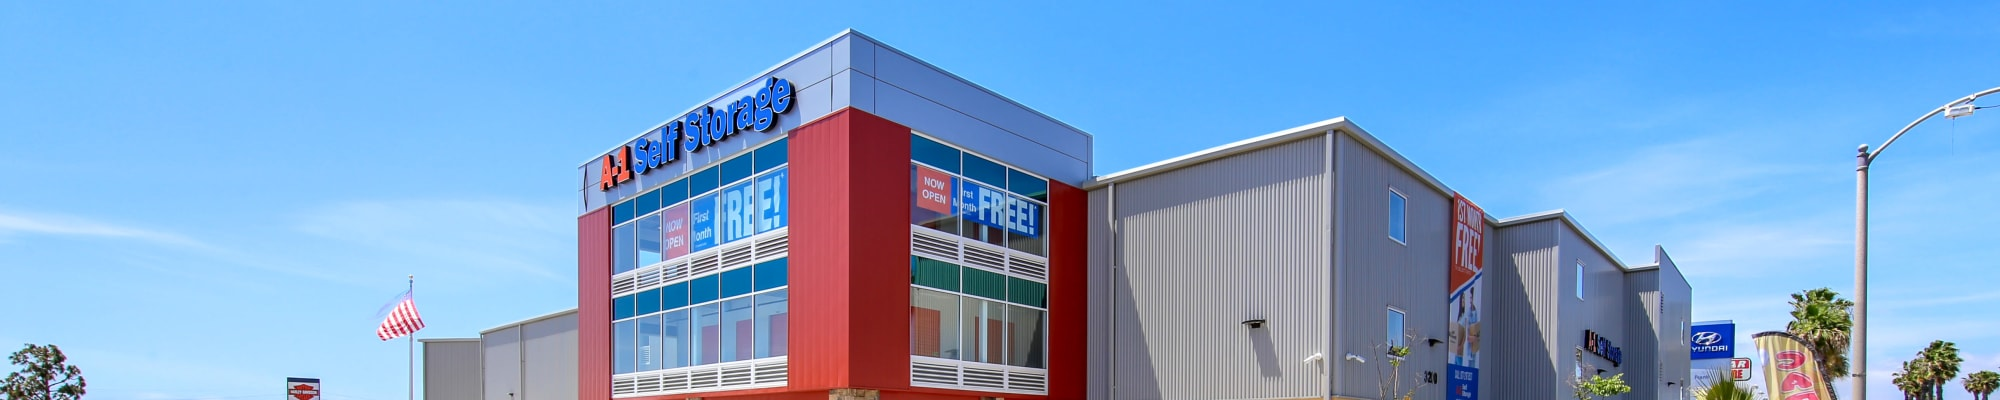 Hours and directions to A-1 Self Storage in San Diego, California